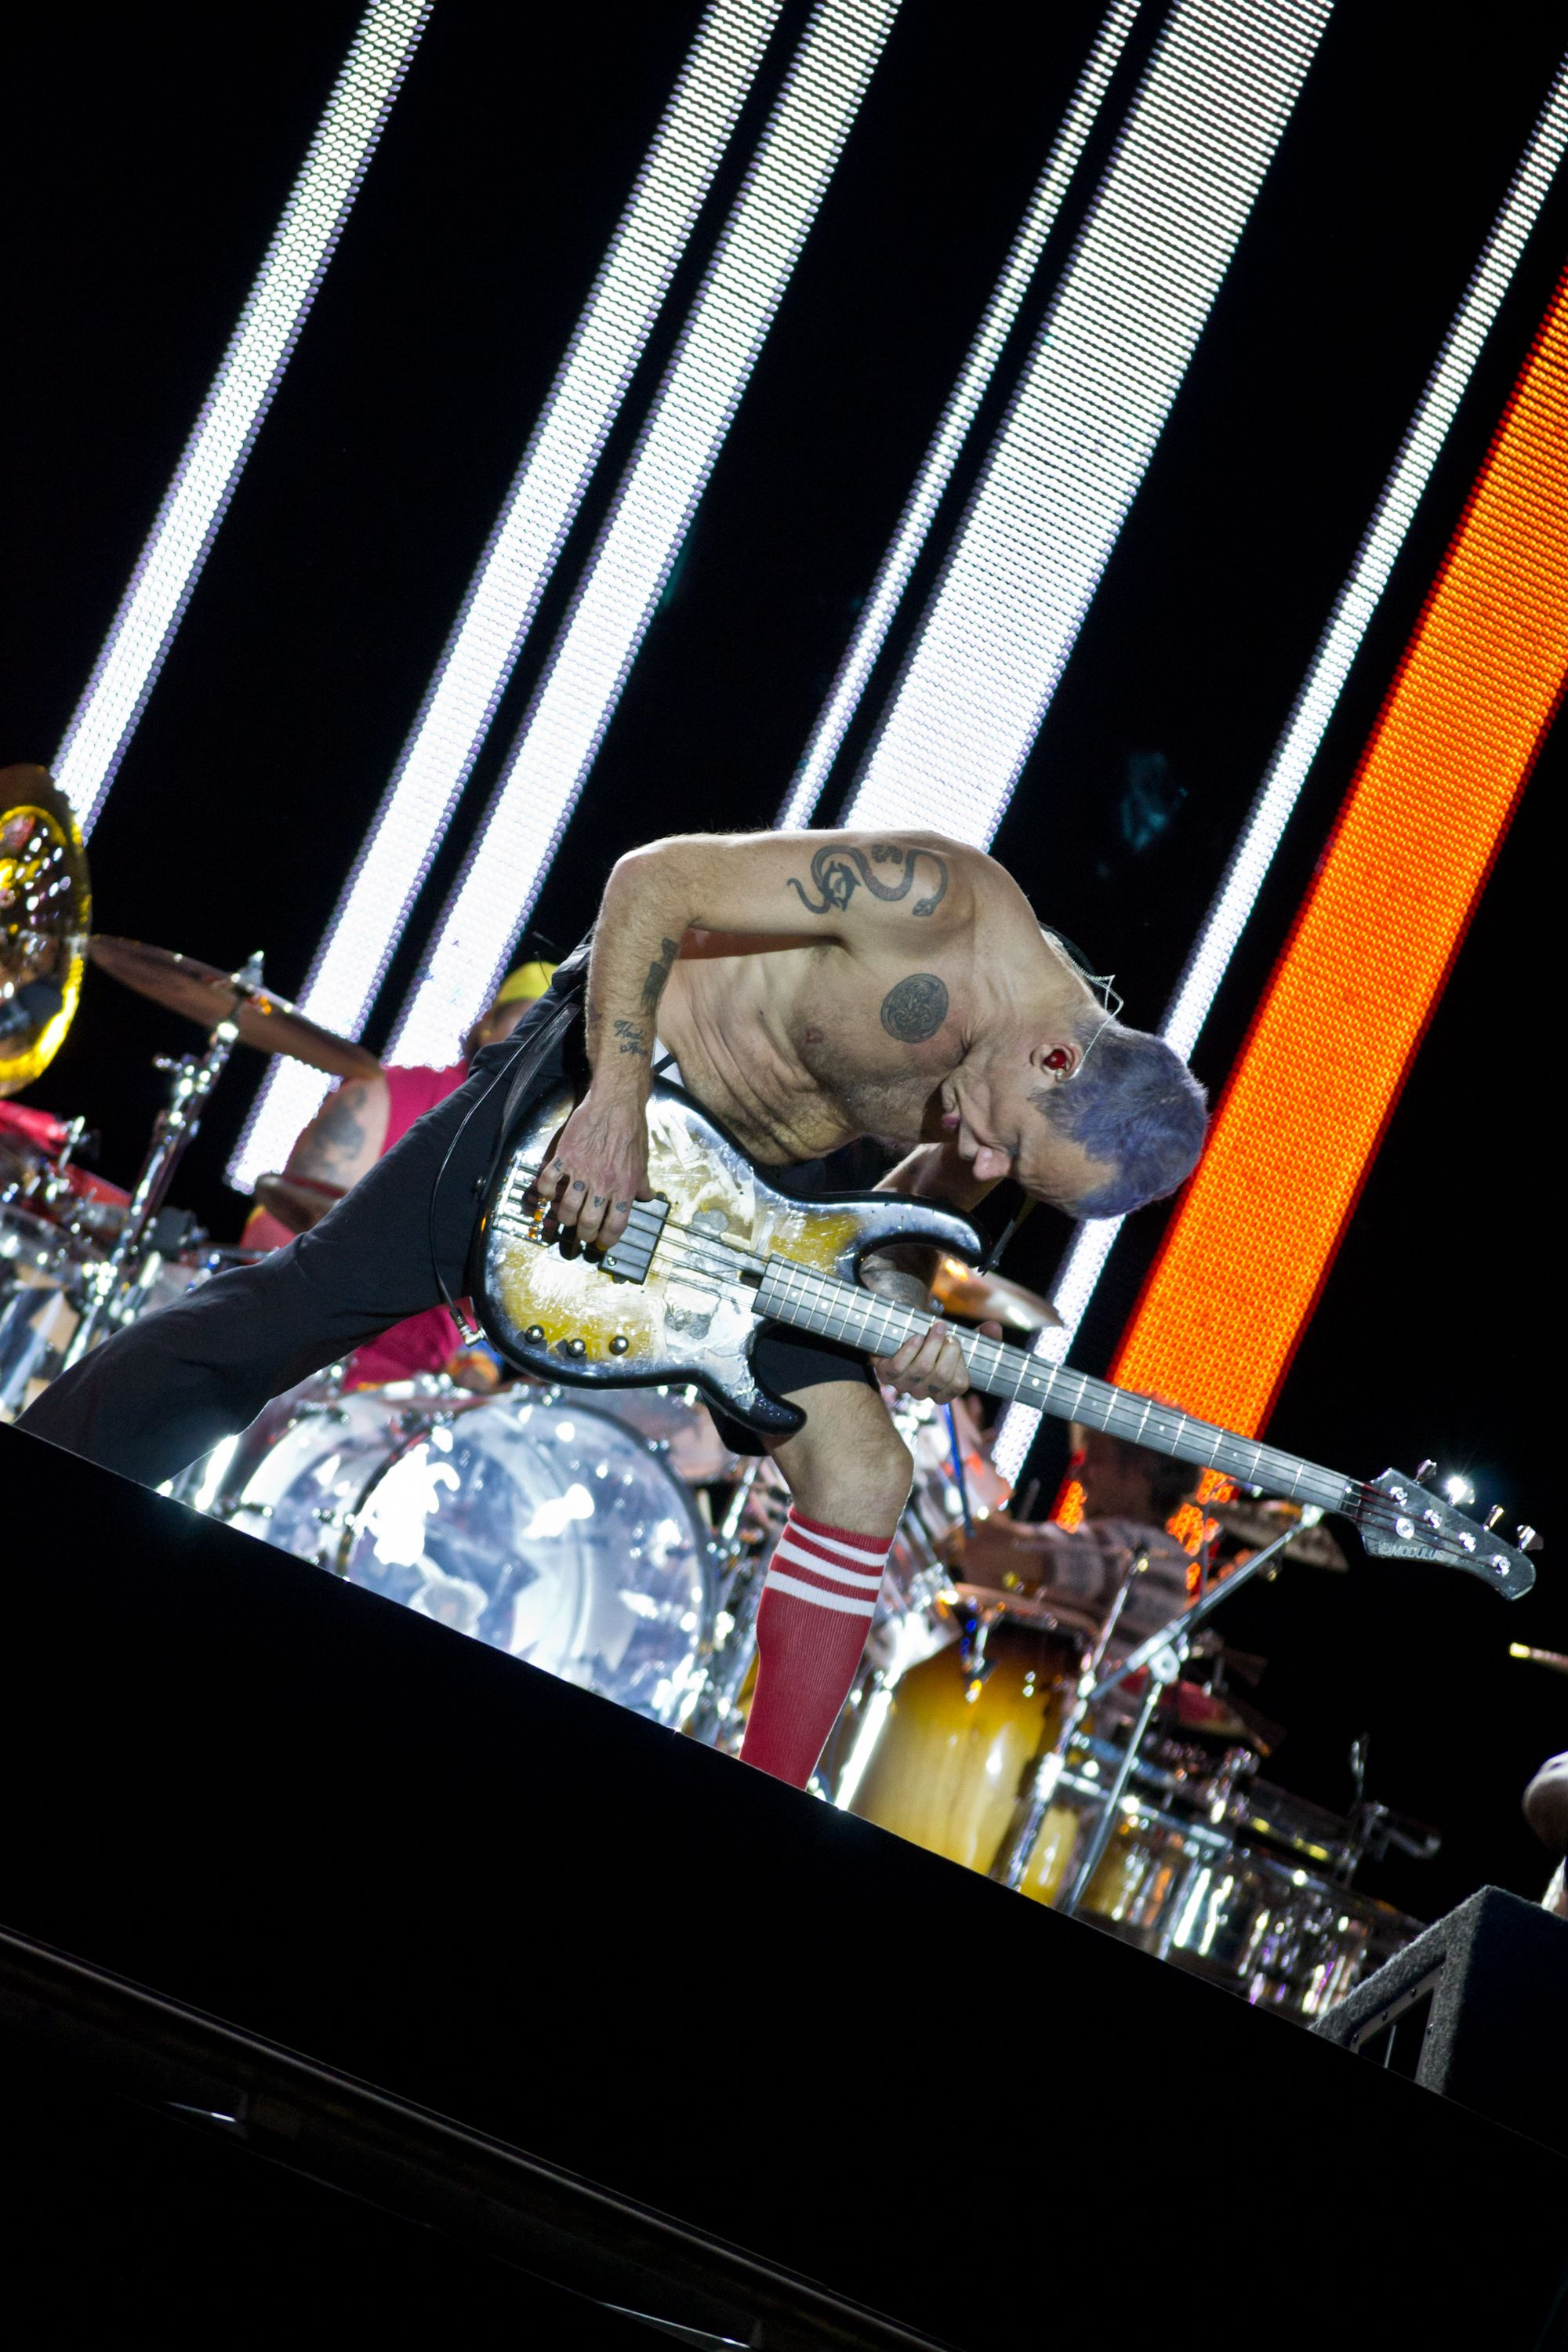 File:Red Hot Chili Peppers - Rock in Rio Madrid 2012 - 32.jpg ...